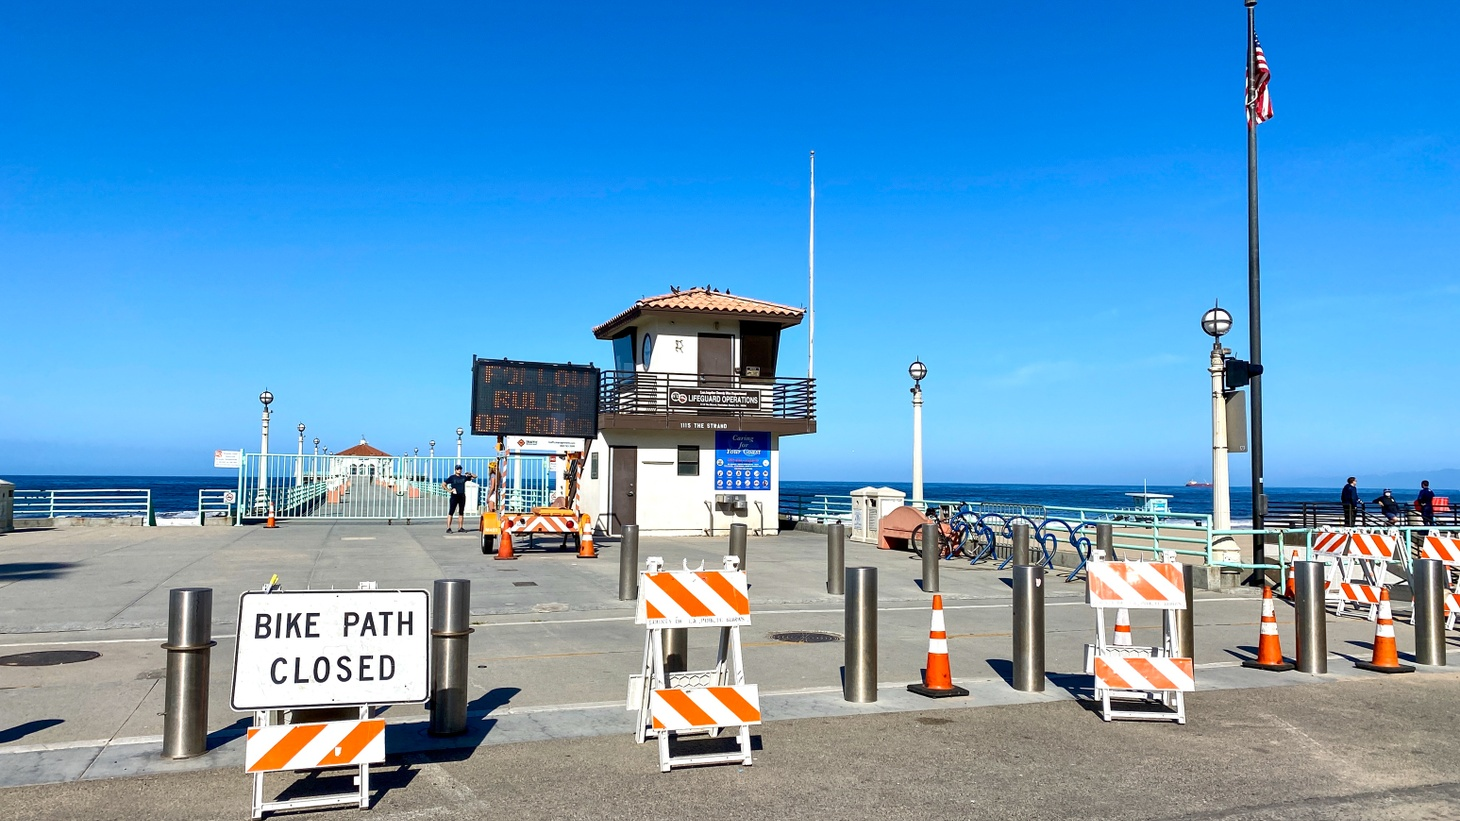 Manhattan Beach pier has been closed due to COVID-19. LA County hopes to reopen by July 4, 2020.